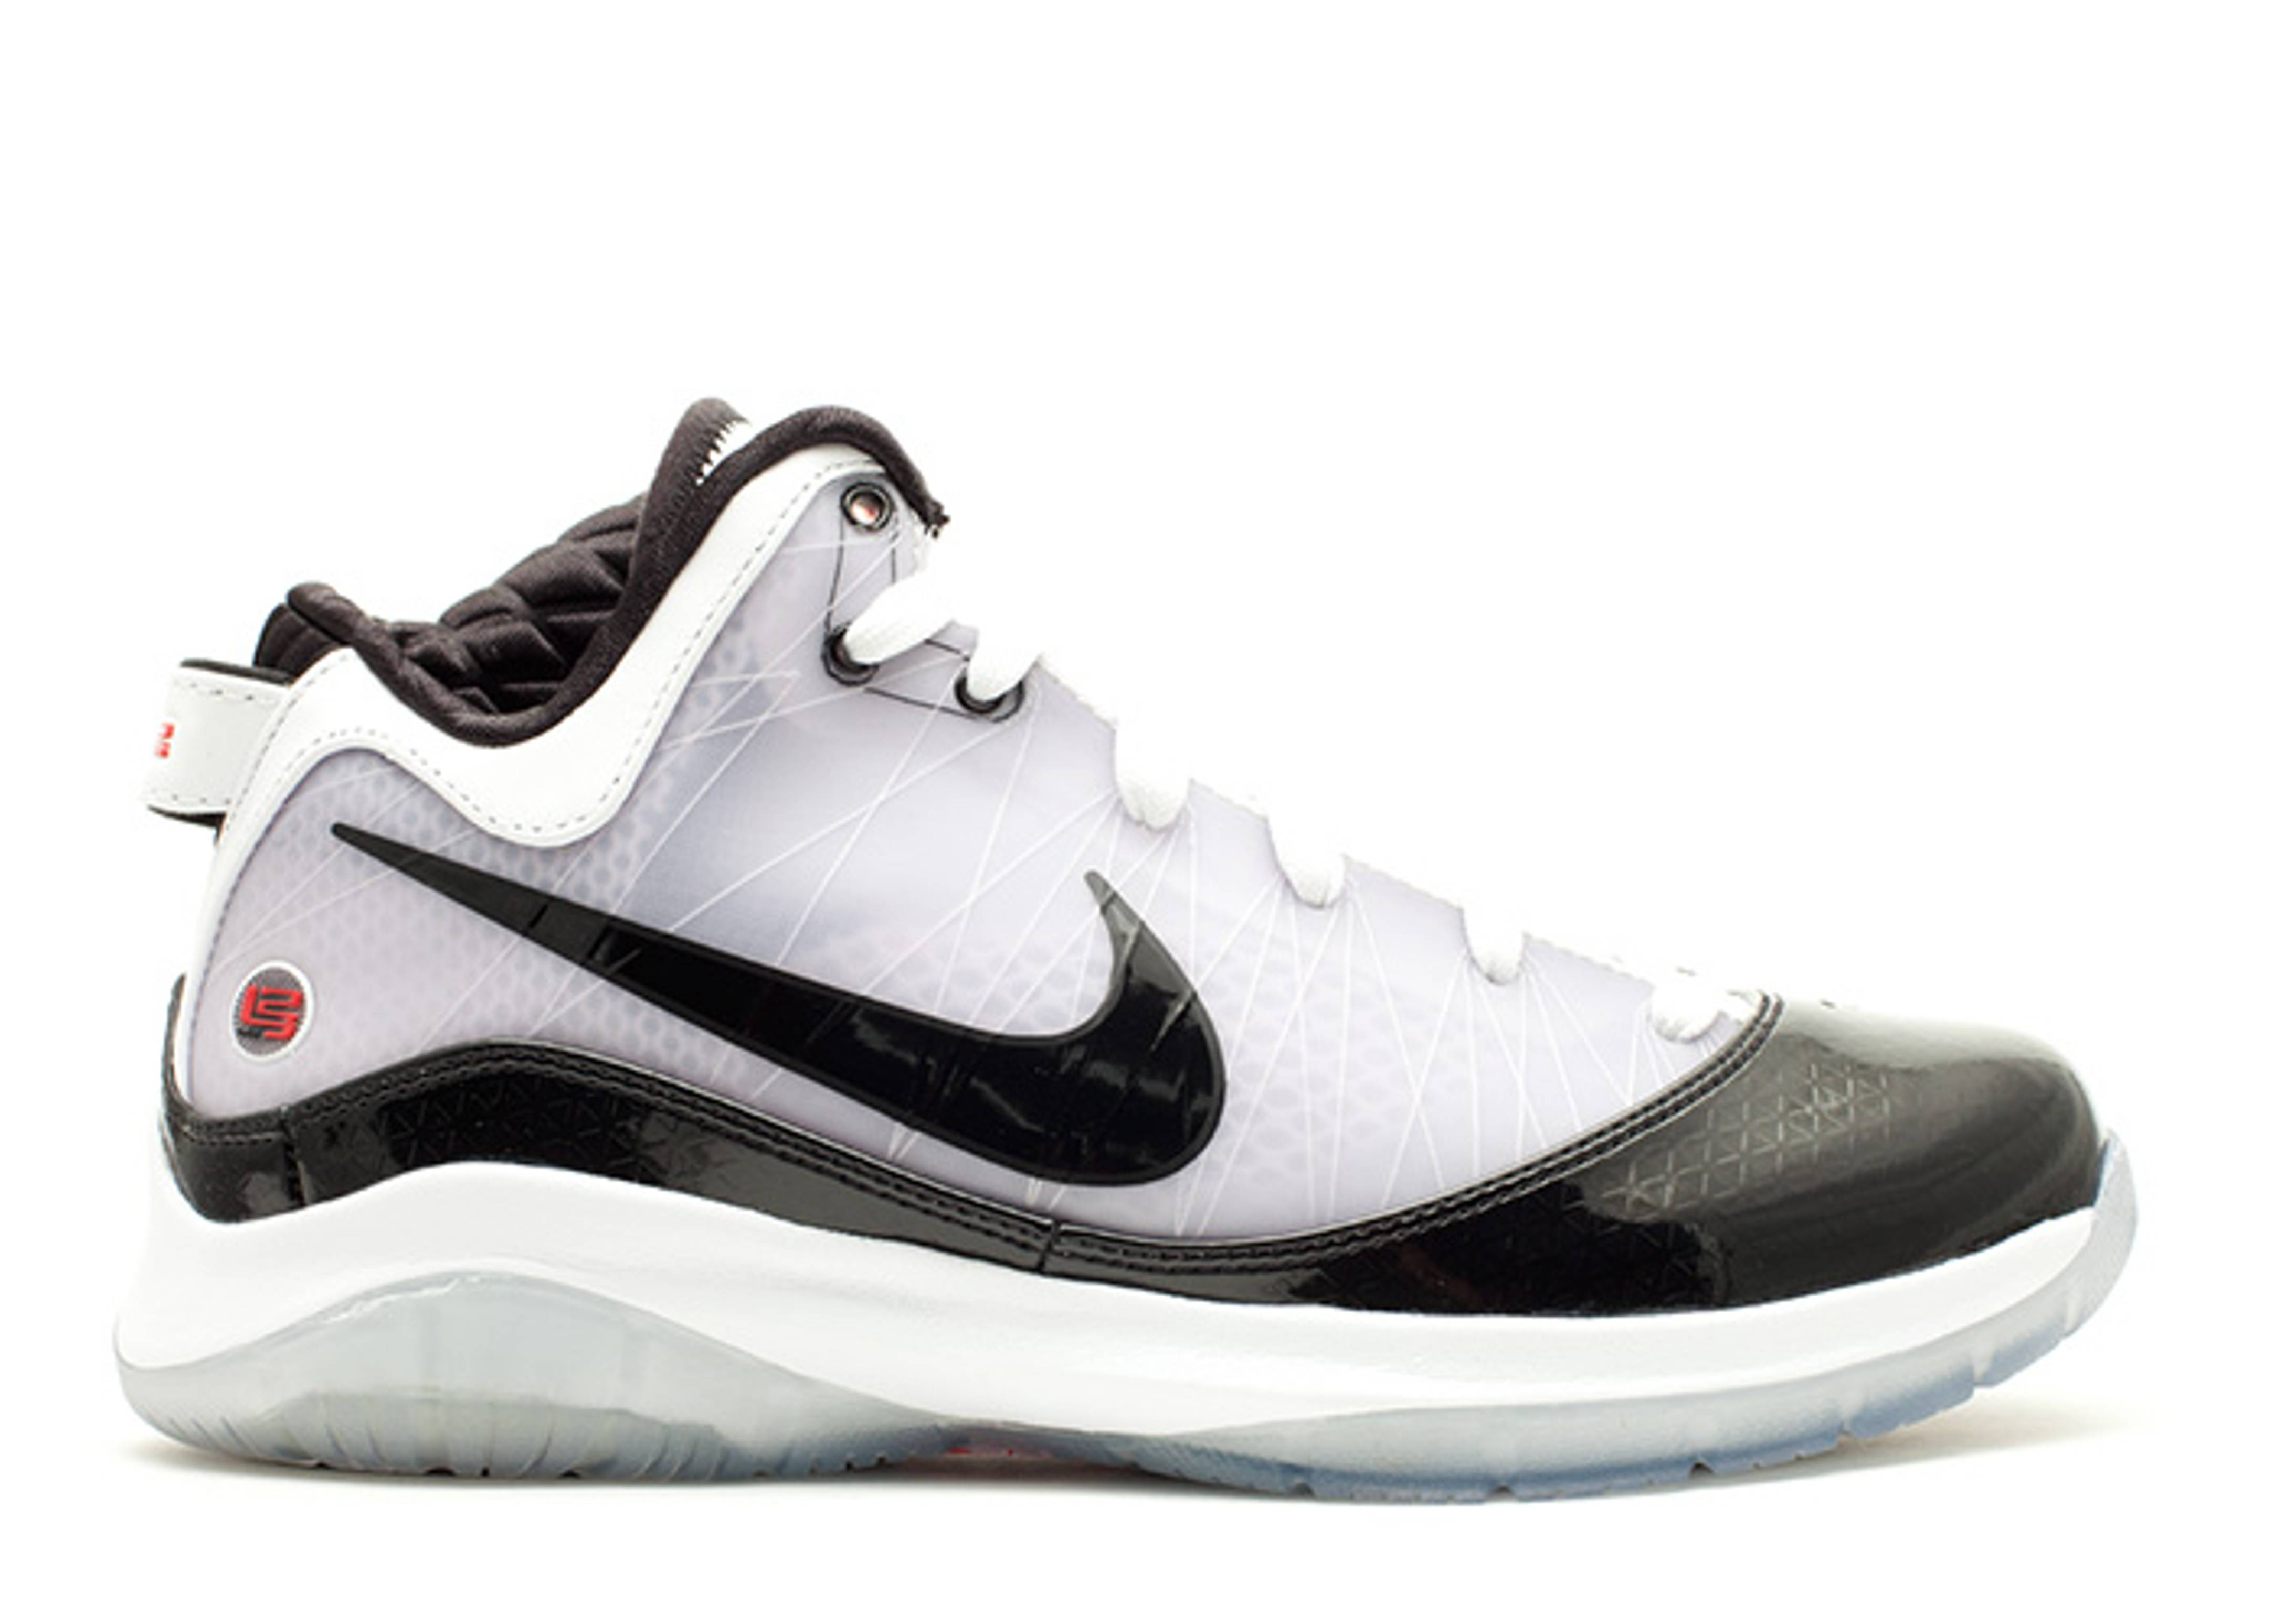 64b43c1ff1b605 Lebron 7 P.s. (pop) - Nike - 408758 101 - white black-sport red ...